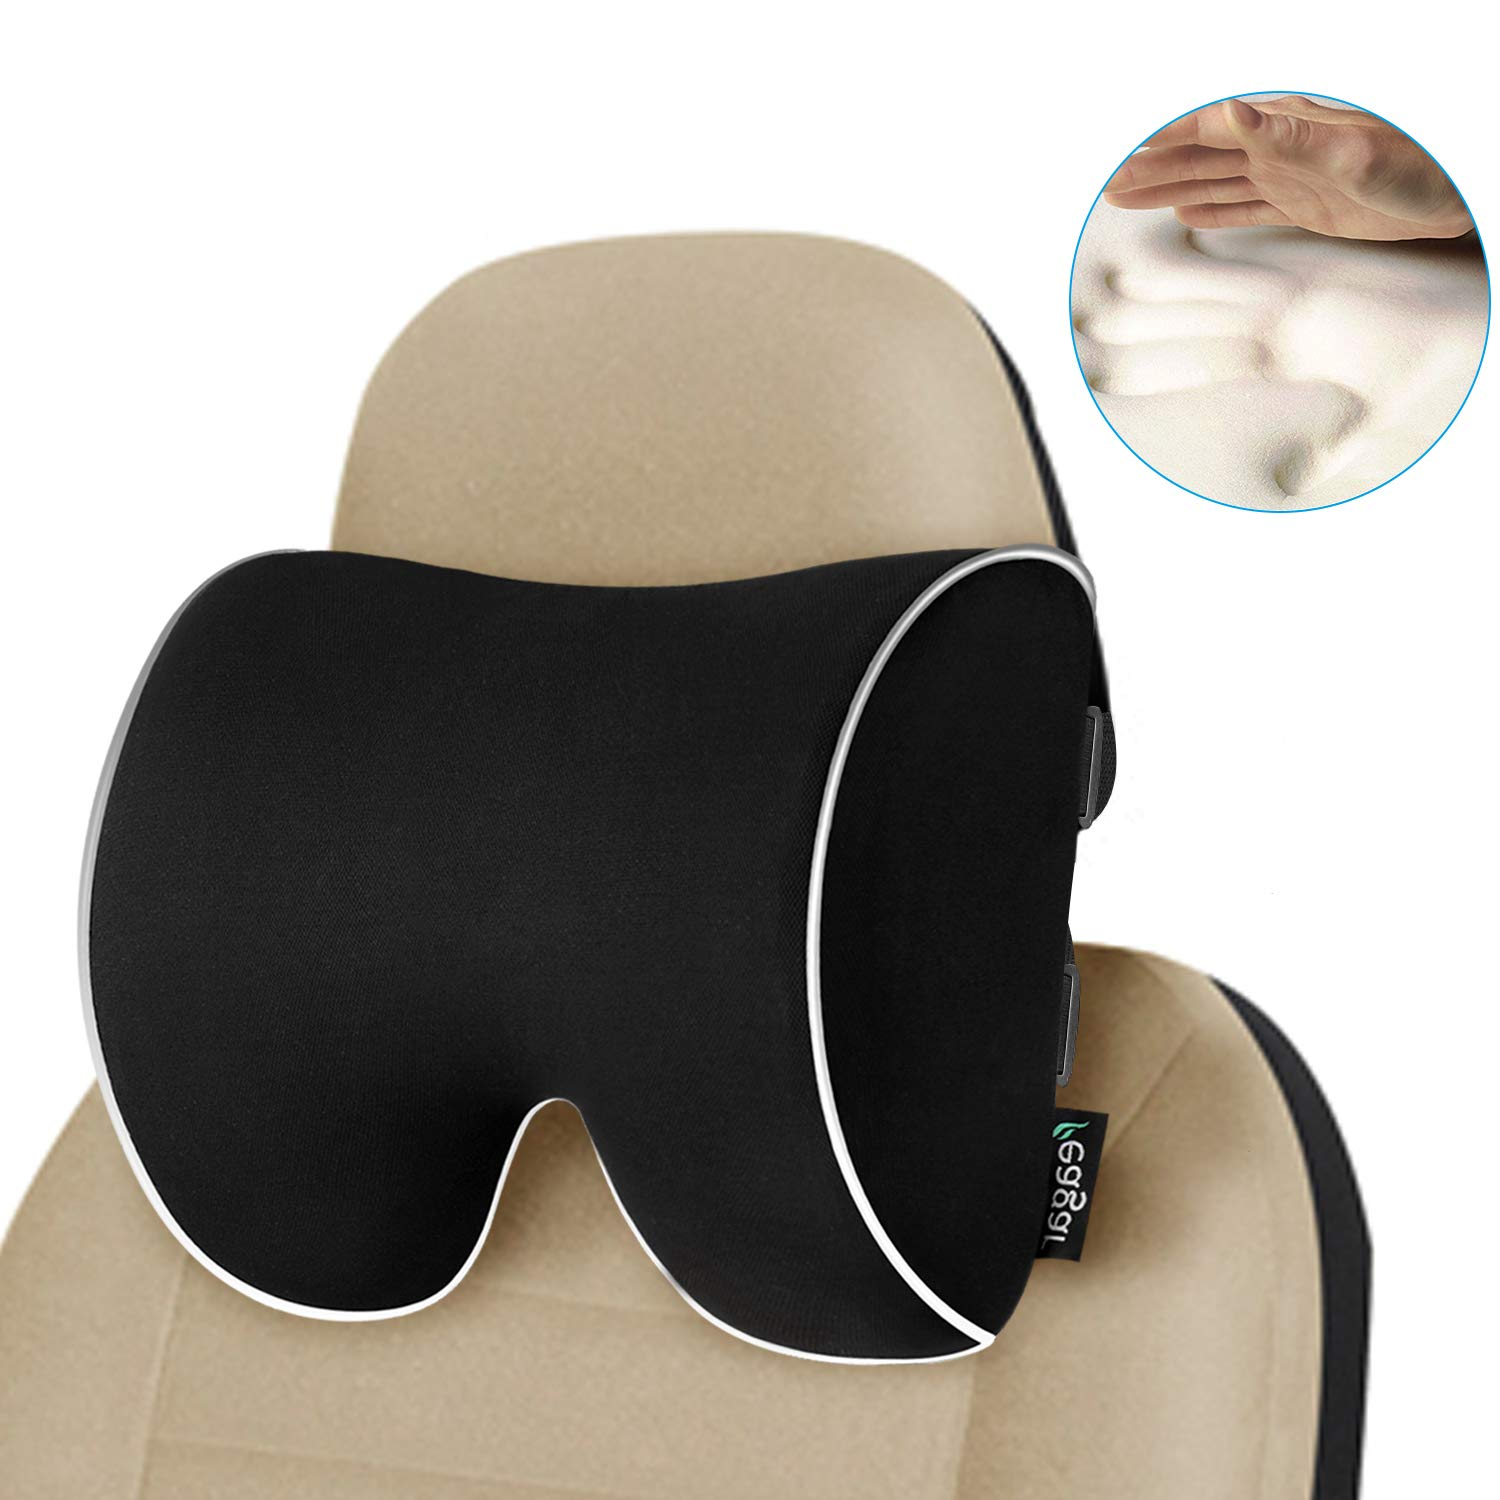 Feagar Car Seat Neck Pillow, Memory Foam Headrest Cushion for Driver Head, Cervical Support - Ergonomic, with 2 Adjustable Straps and Washable Cover- Driving Neck Pain Relief (Black Car Neck Pillow) by Feagar (Image #1)